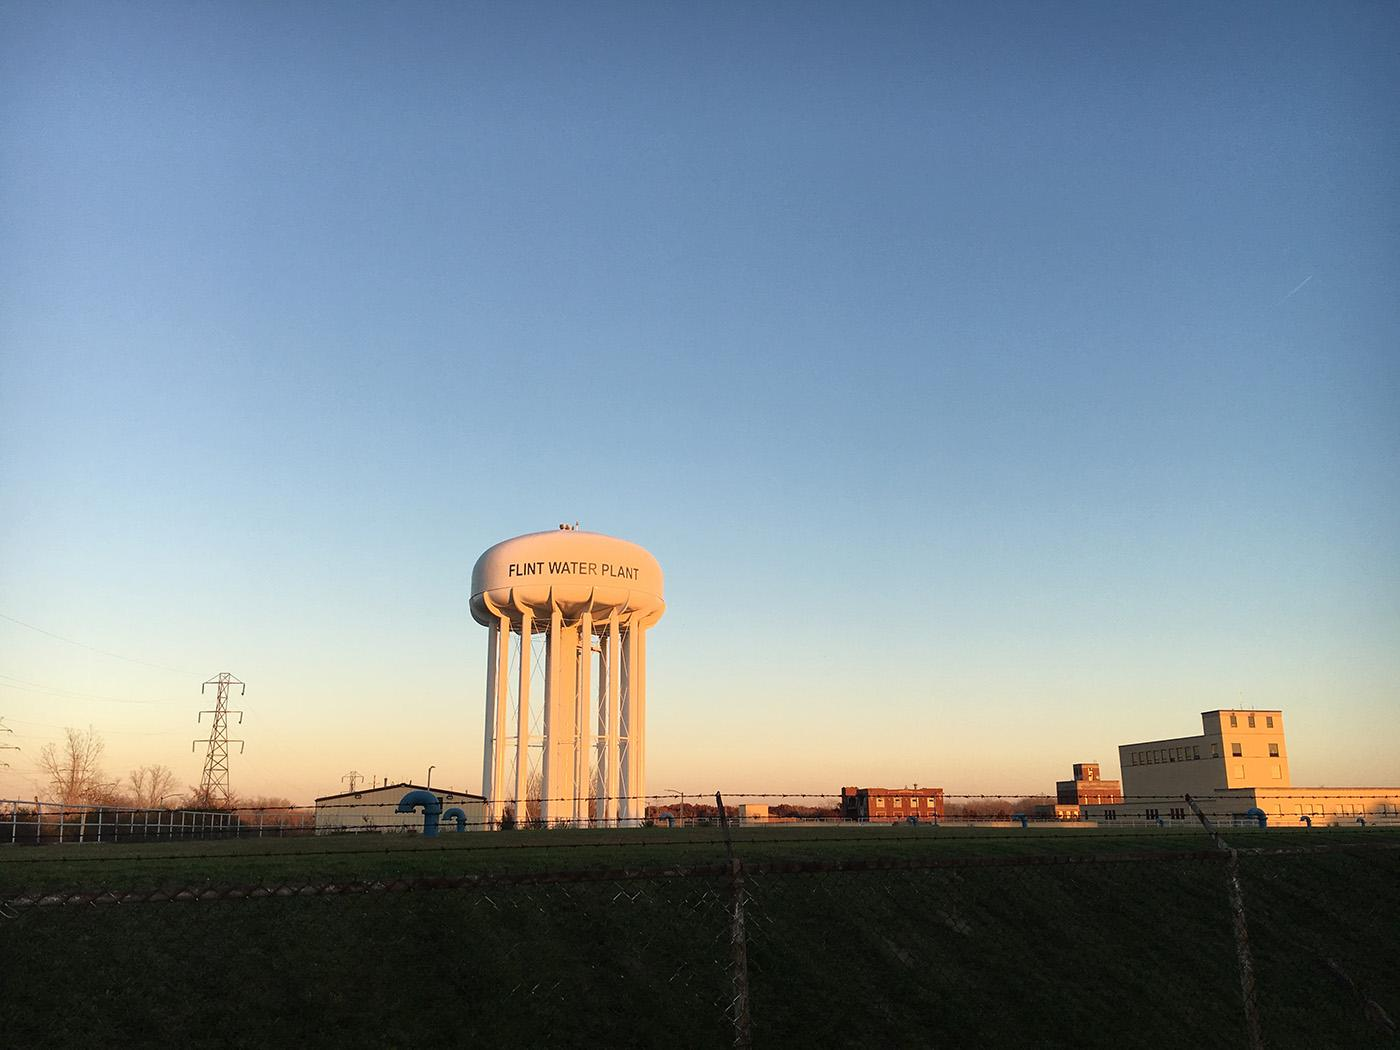 The water treatment plant in Flint, Michigan. Photo: Caitlin Saks/WGBH